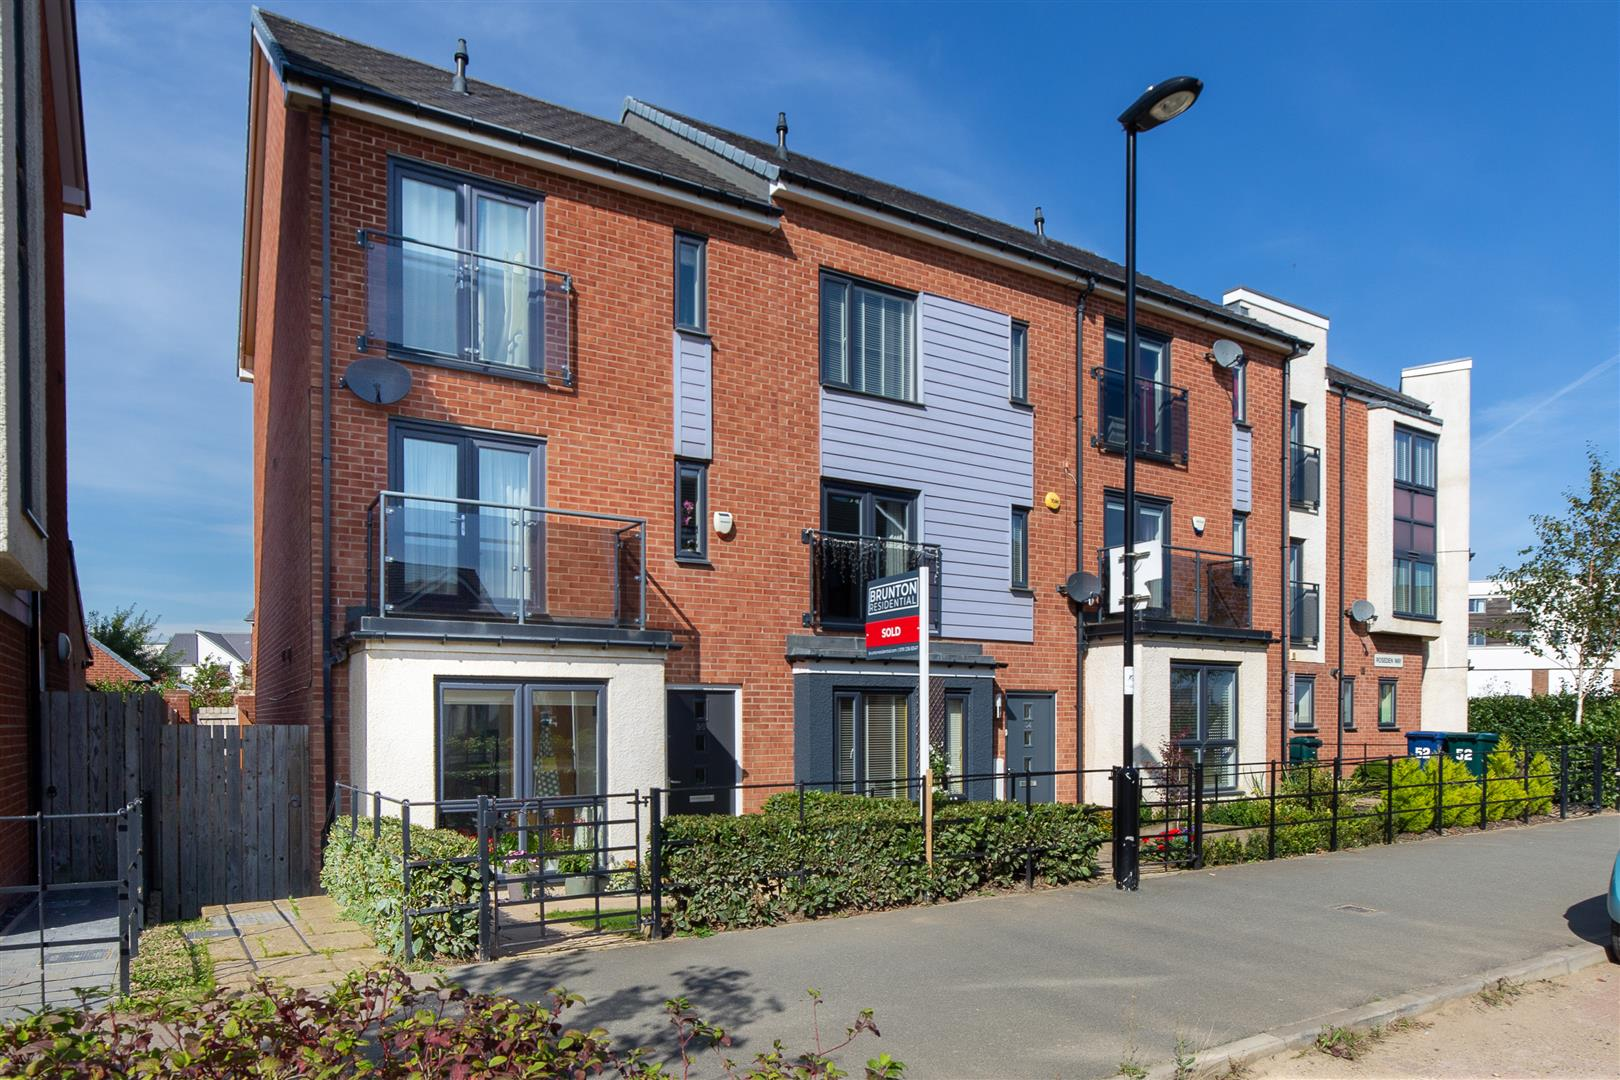 4 bed town house for sale in Newcastle Upon Tyne, NE13 9BN - Property Image 1